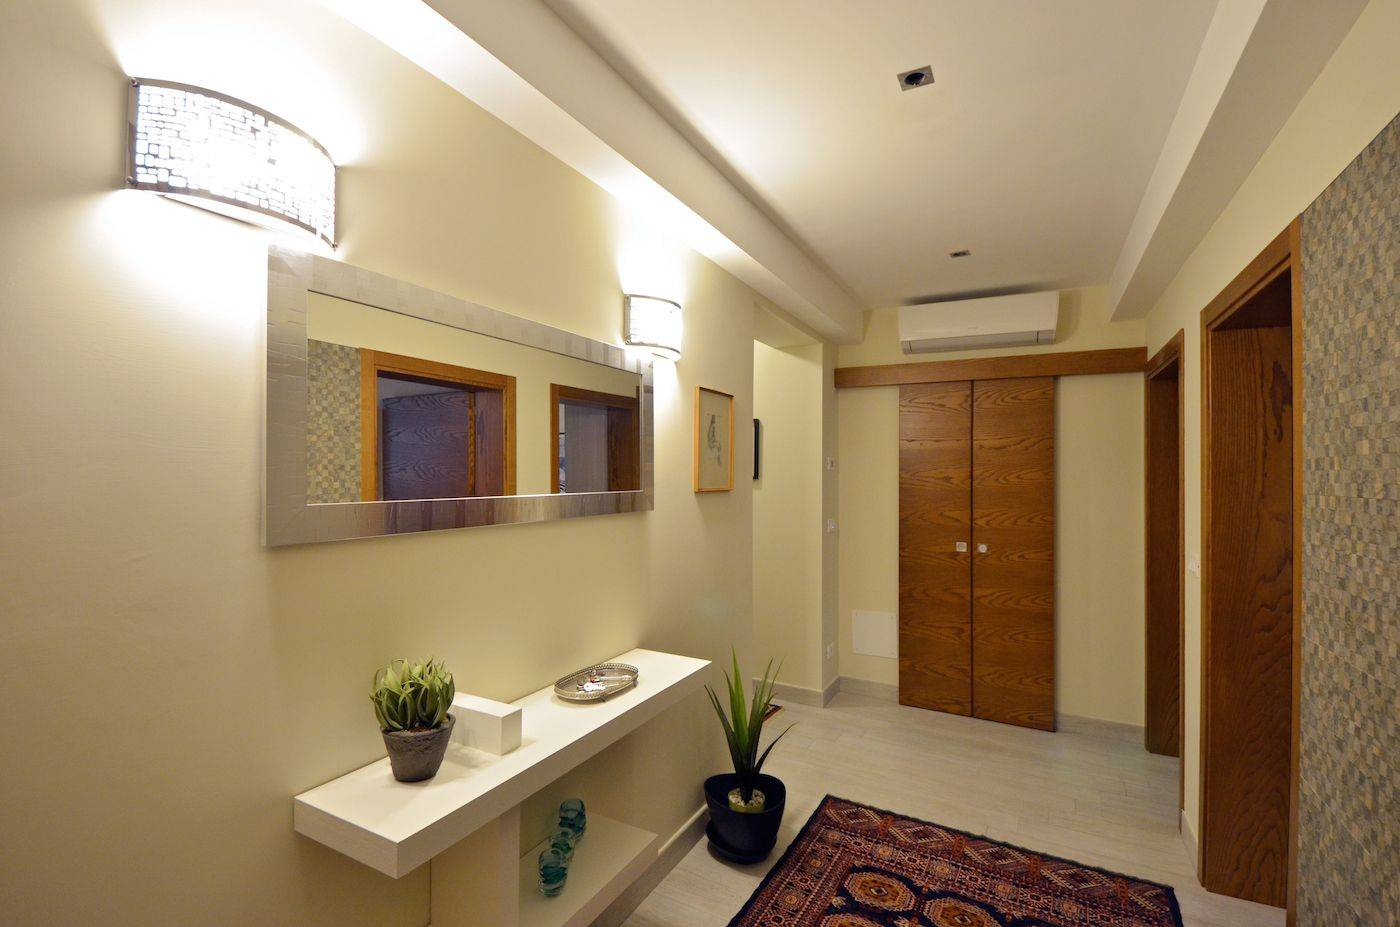 spacious entrance room